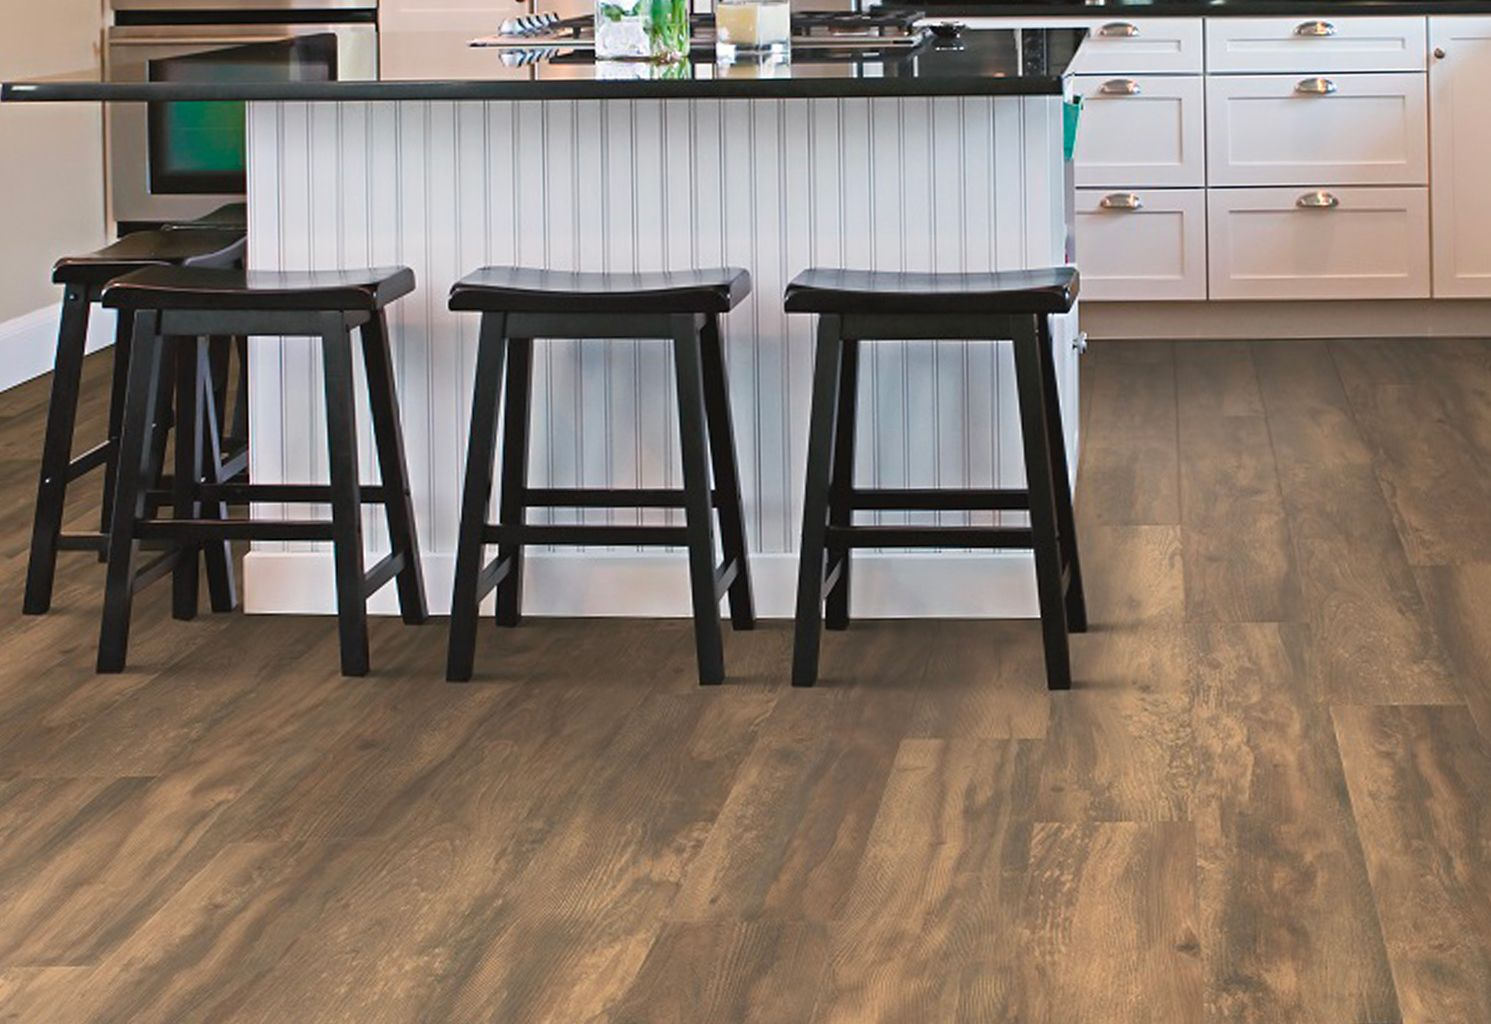 Pergo Outlast Balcony Brown Wood Is A Uniquely Designed Distressed Wood Look The High Color Variation In The Copper Pergo Outlast Brown Wood Pergo Flooring